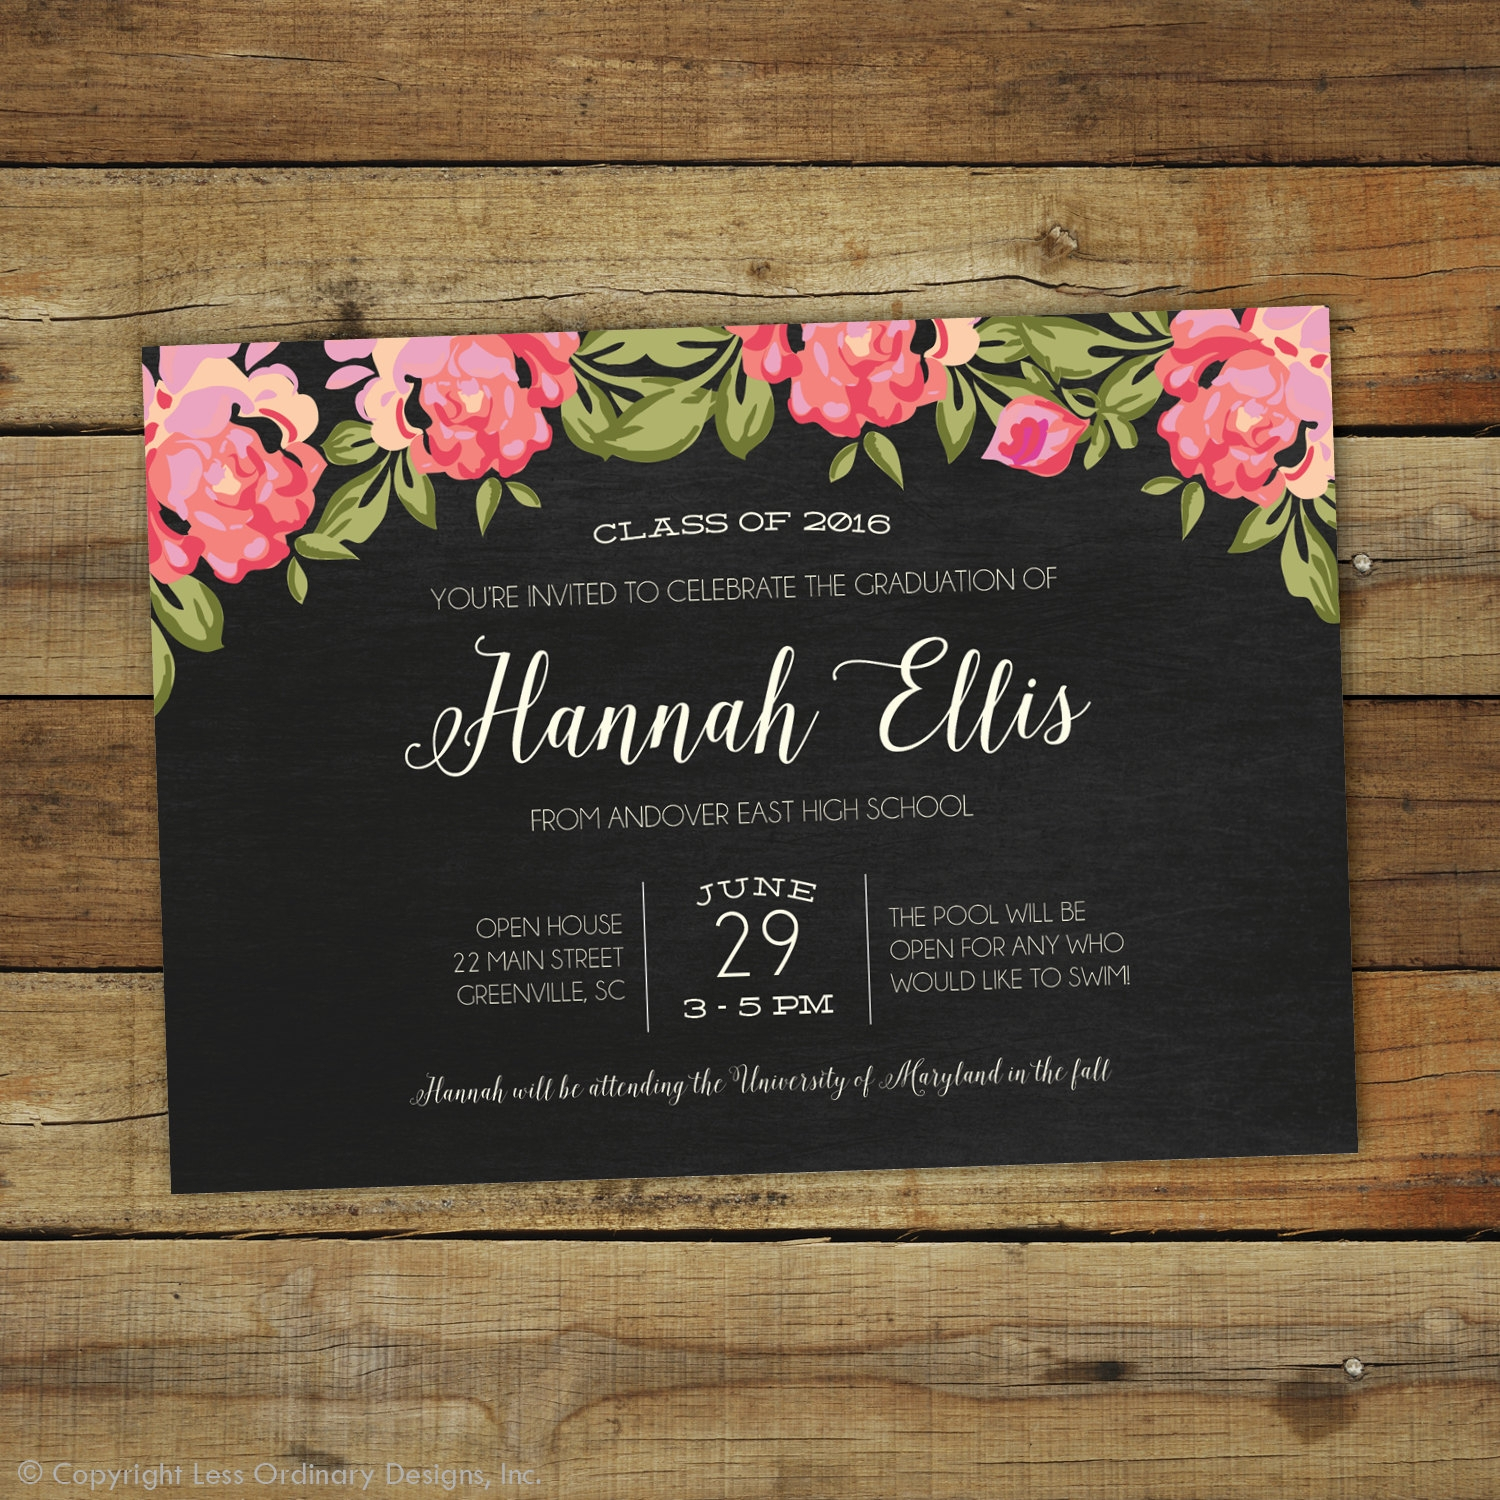 19 Graduation Party Invitation Designs And Examples PSD